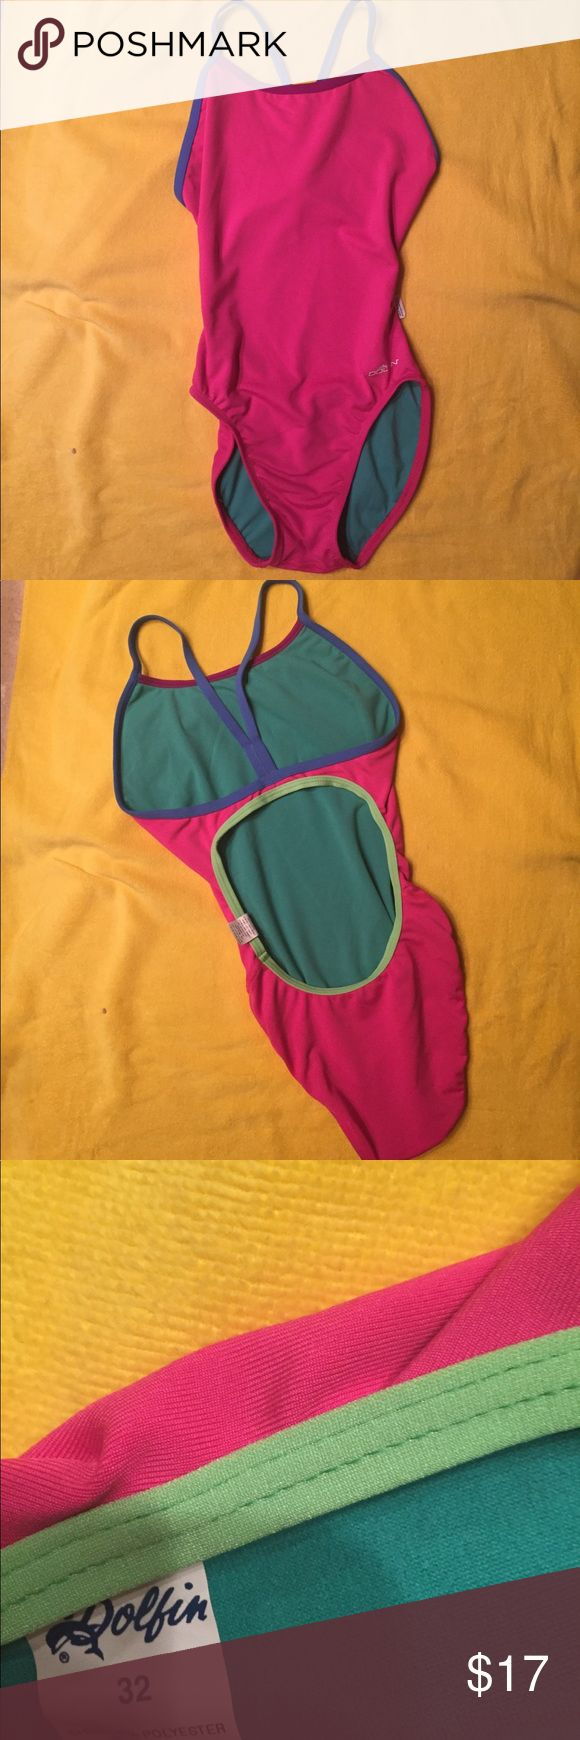 Multi color one piece 😘 this Bellas multi-color fixed strap onesie in pink with blue straps and lime green piping on back. If you like Jolyn onesies *NOT Jolyn*, you're going to love this one piece. ☀️🏊♀️🏄♀️ NWOT see sizing chart in photos under Women- Bellas Jolyn Clothing Swim One Pieces